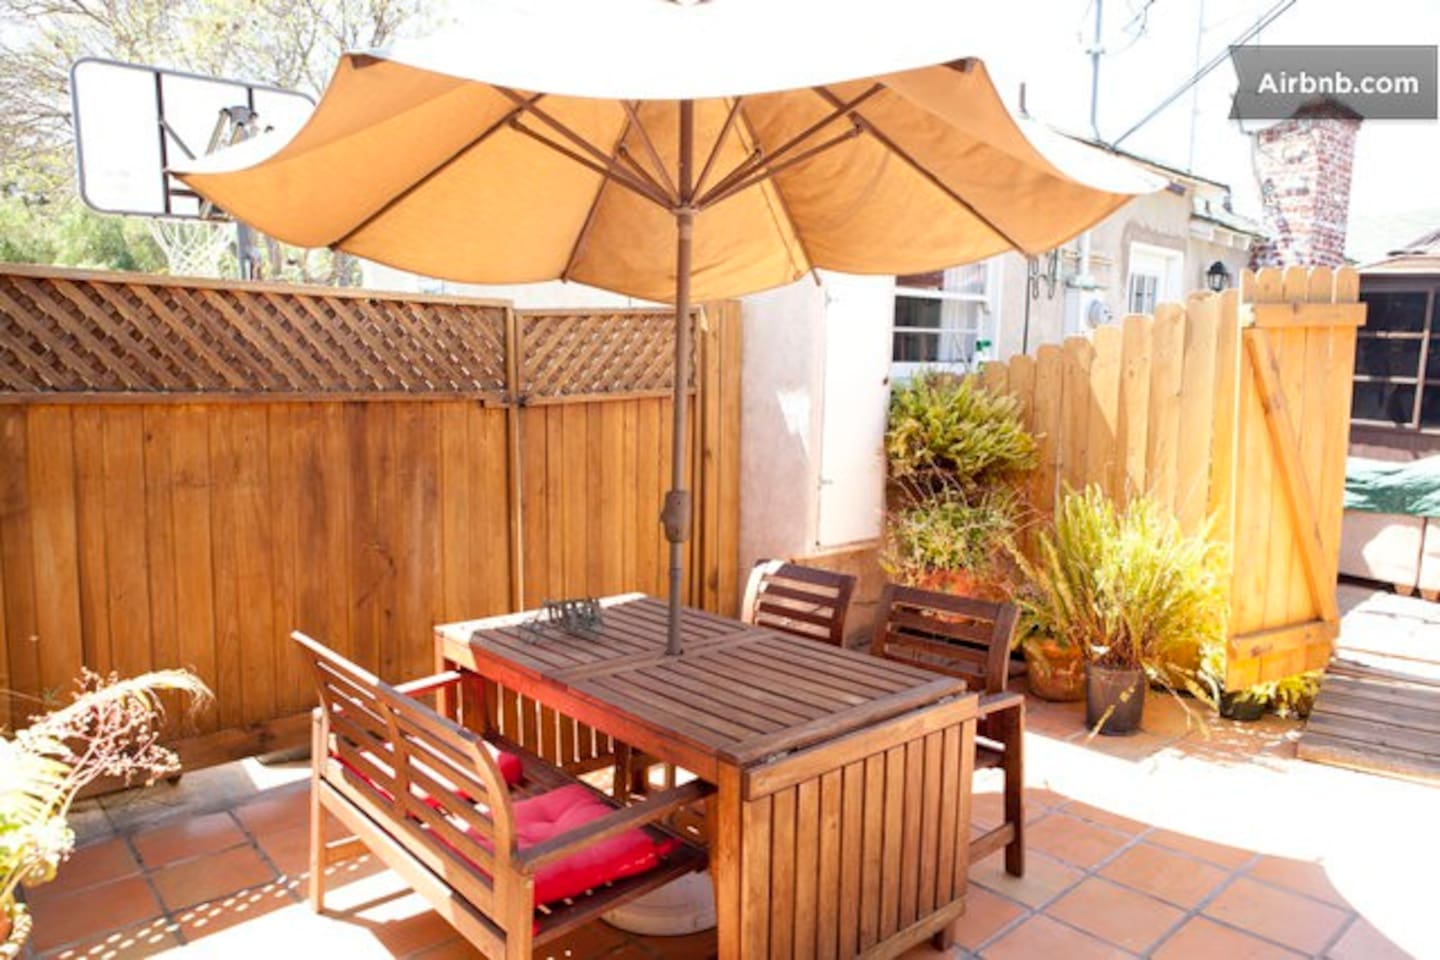 Our sunny patio. Private just for you.